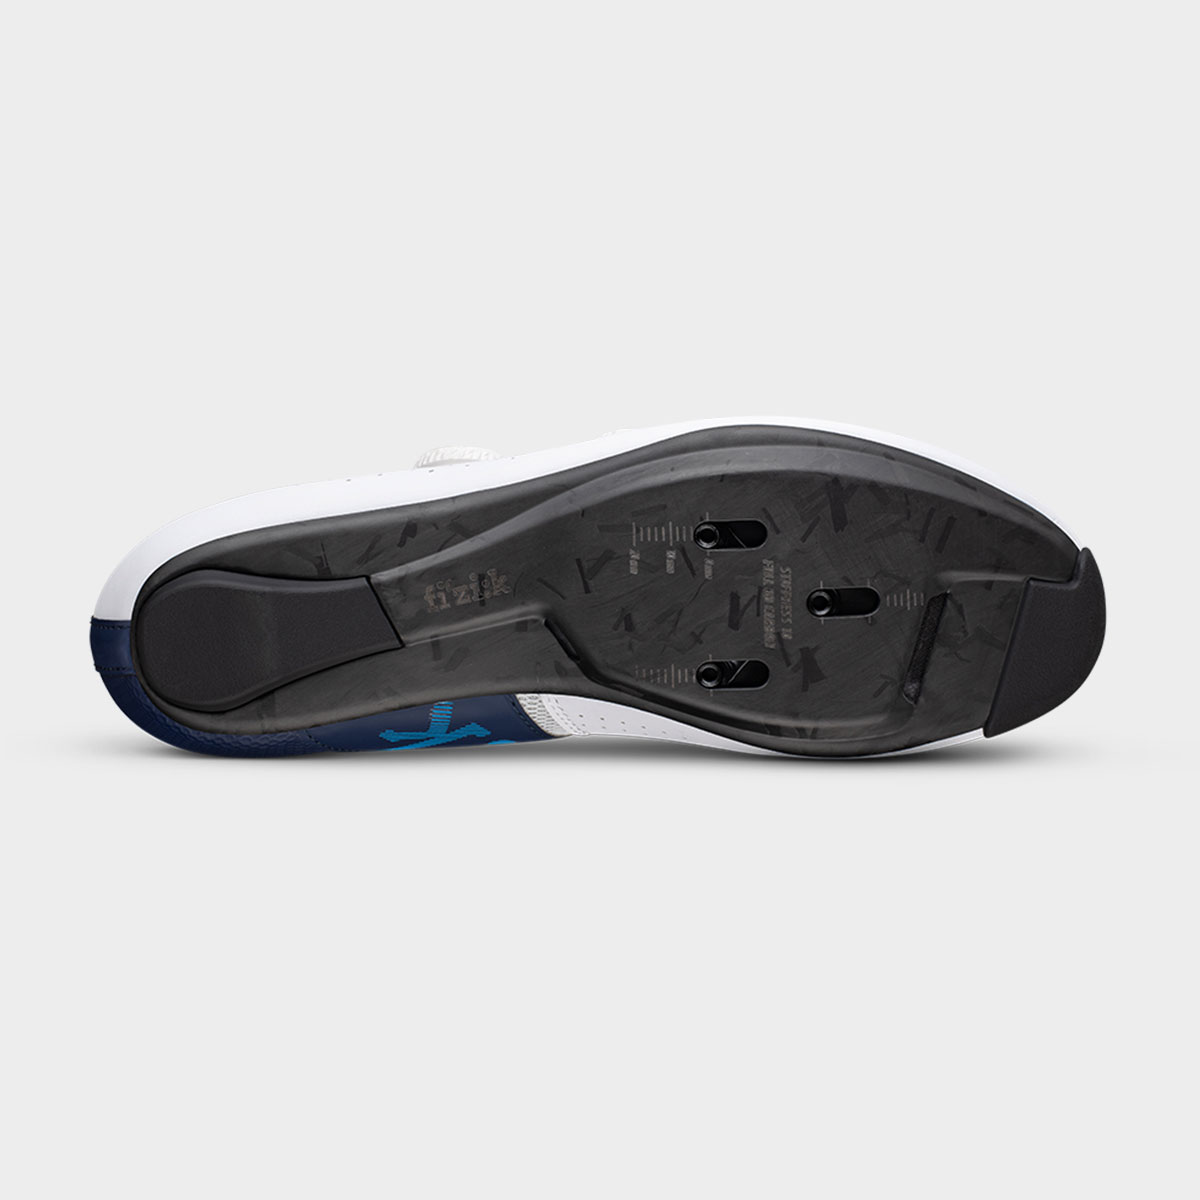 fizik-performance-cycling-shoes-vento-infinito-carbon-2-wide-movistar-team